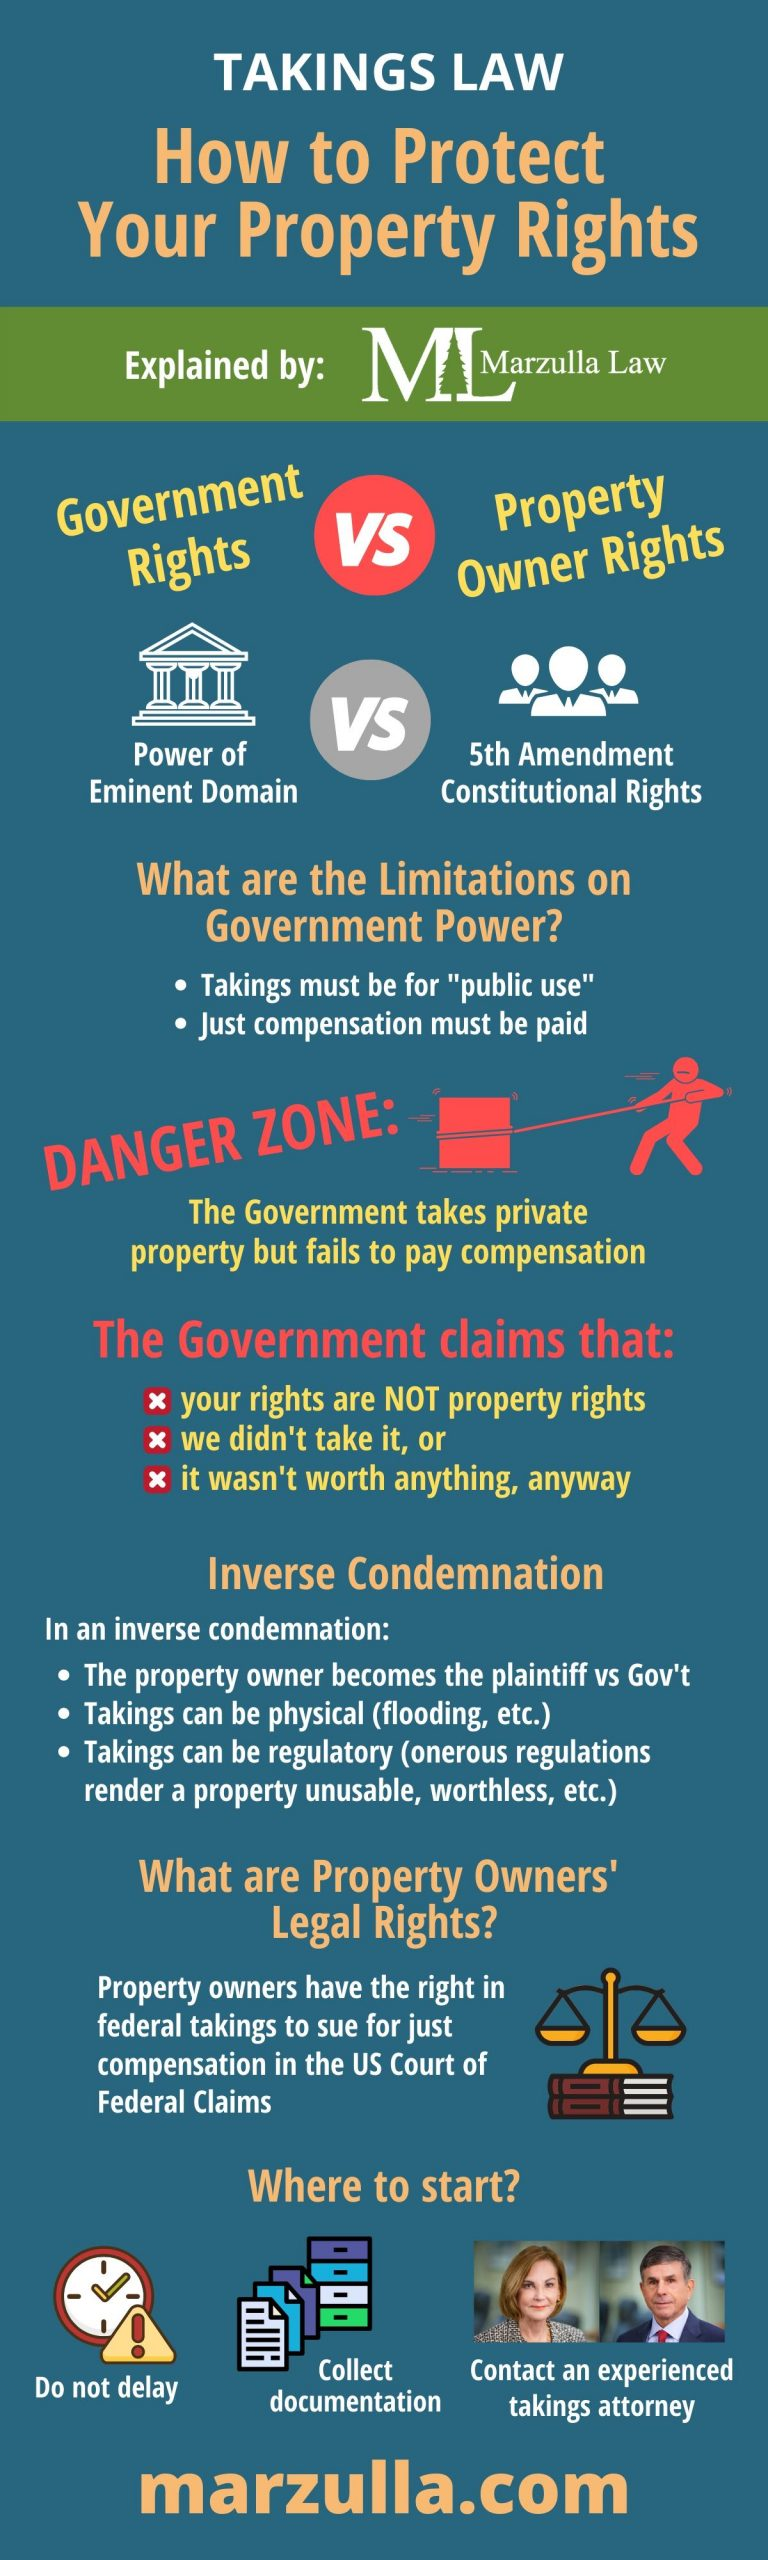 takings law infographic - How to Protect Your Property Rights by Marzulla Law Firm